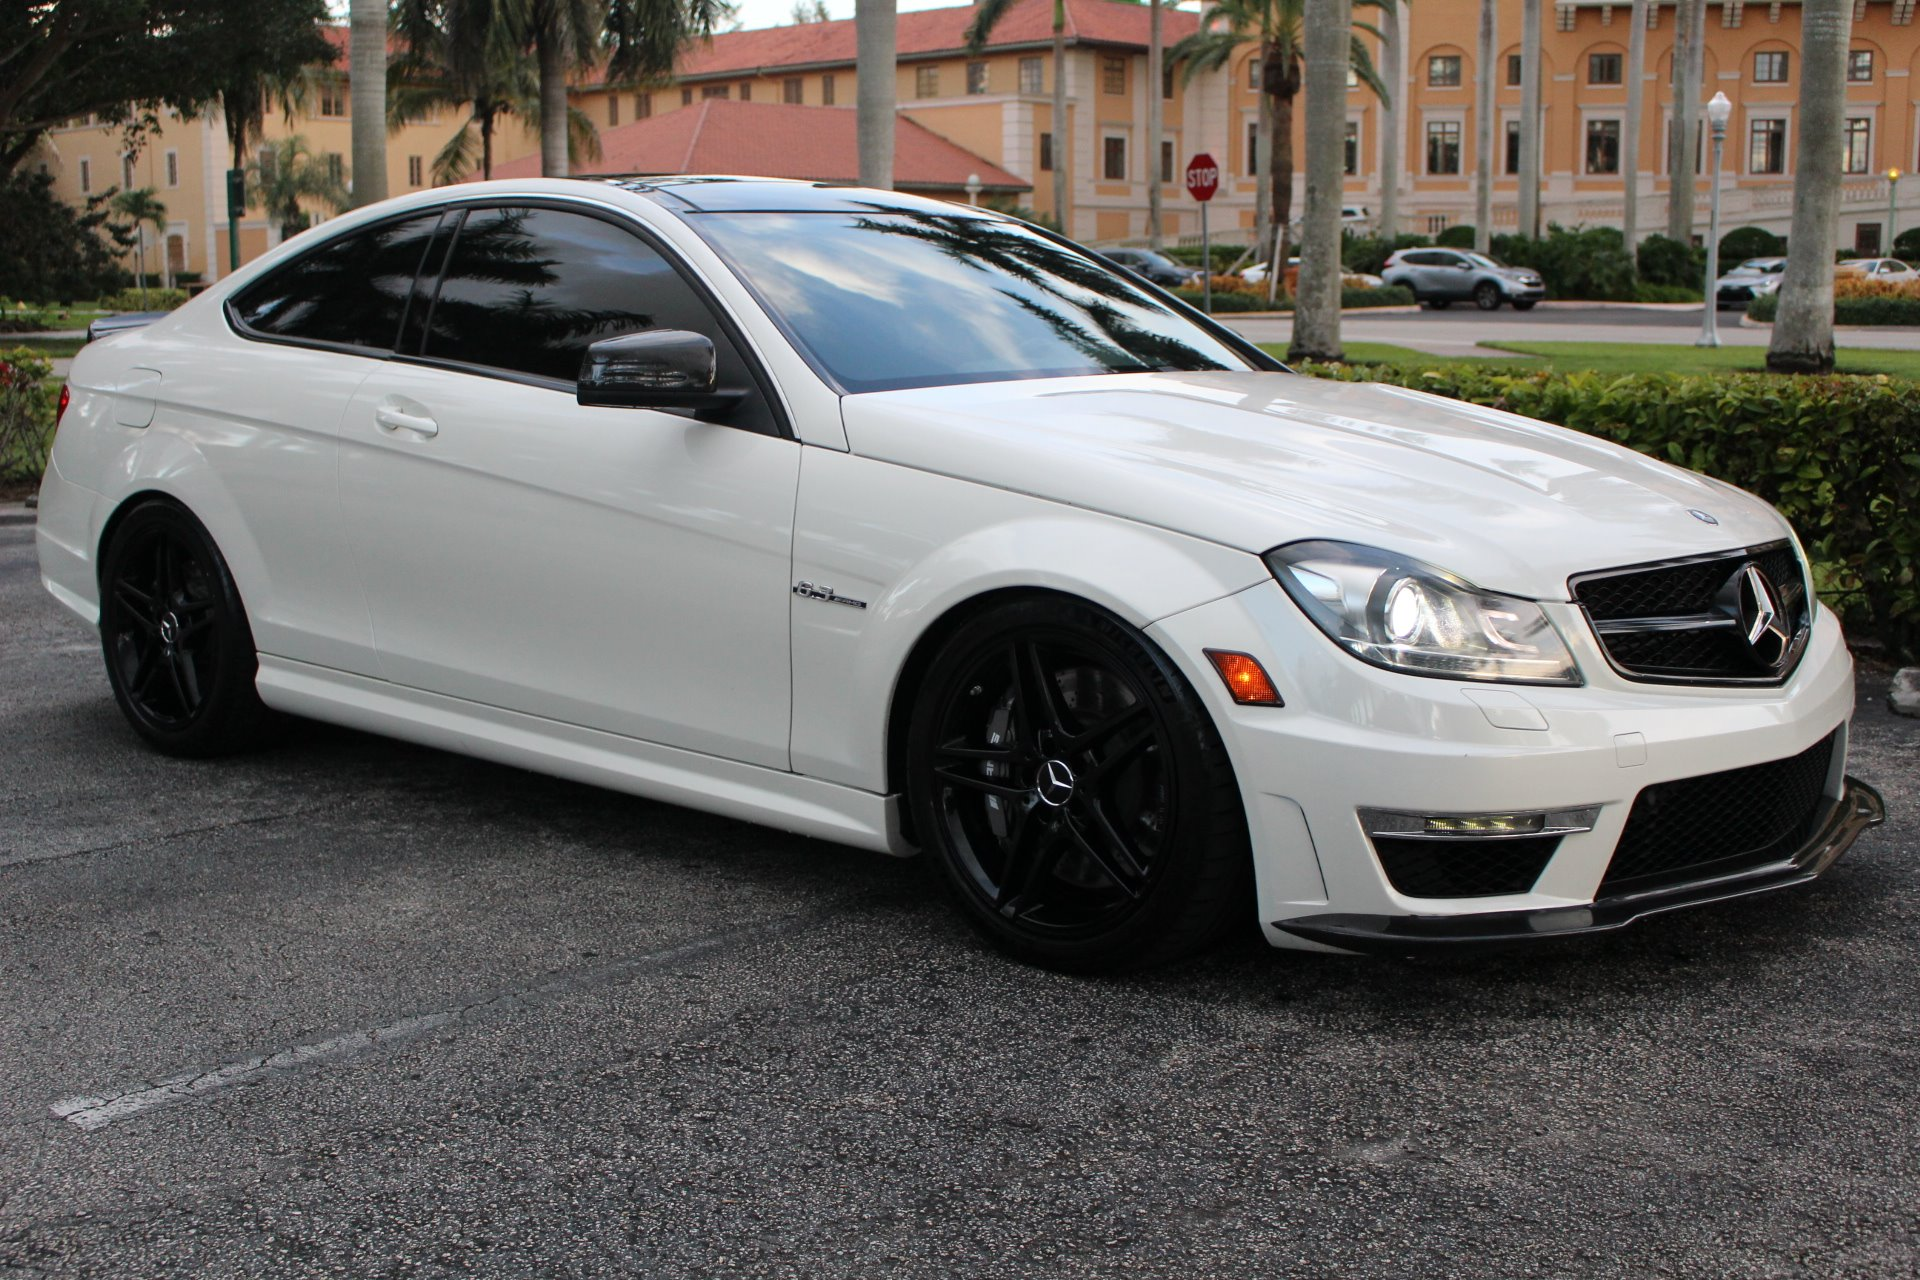 Used 2014 Mercedes-Benz C-Class C 63 AMG for sale Sold at The Gables Sports Cars in Miami FL 33146 3